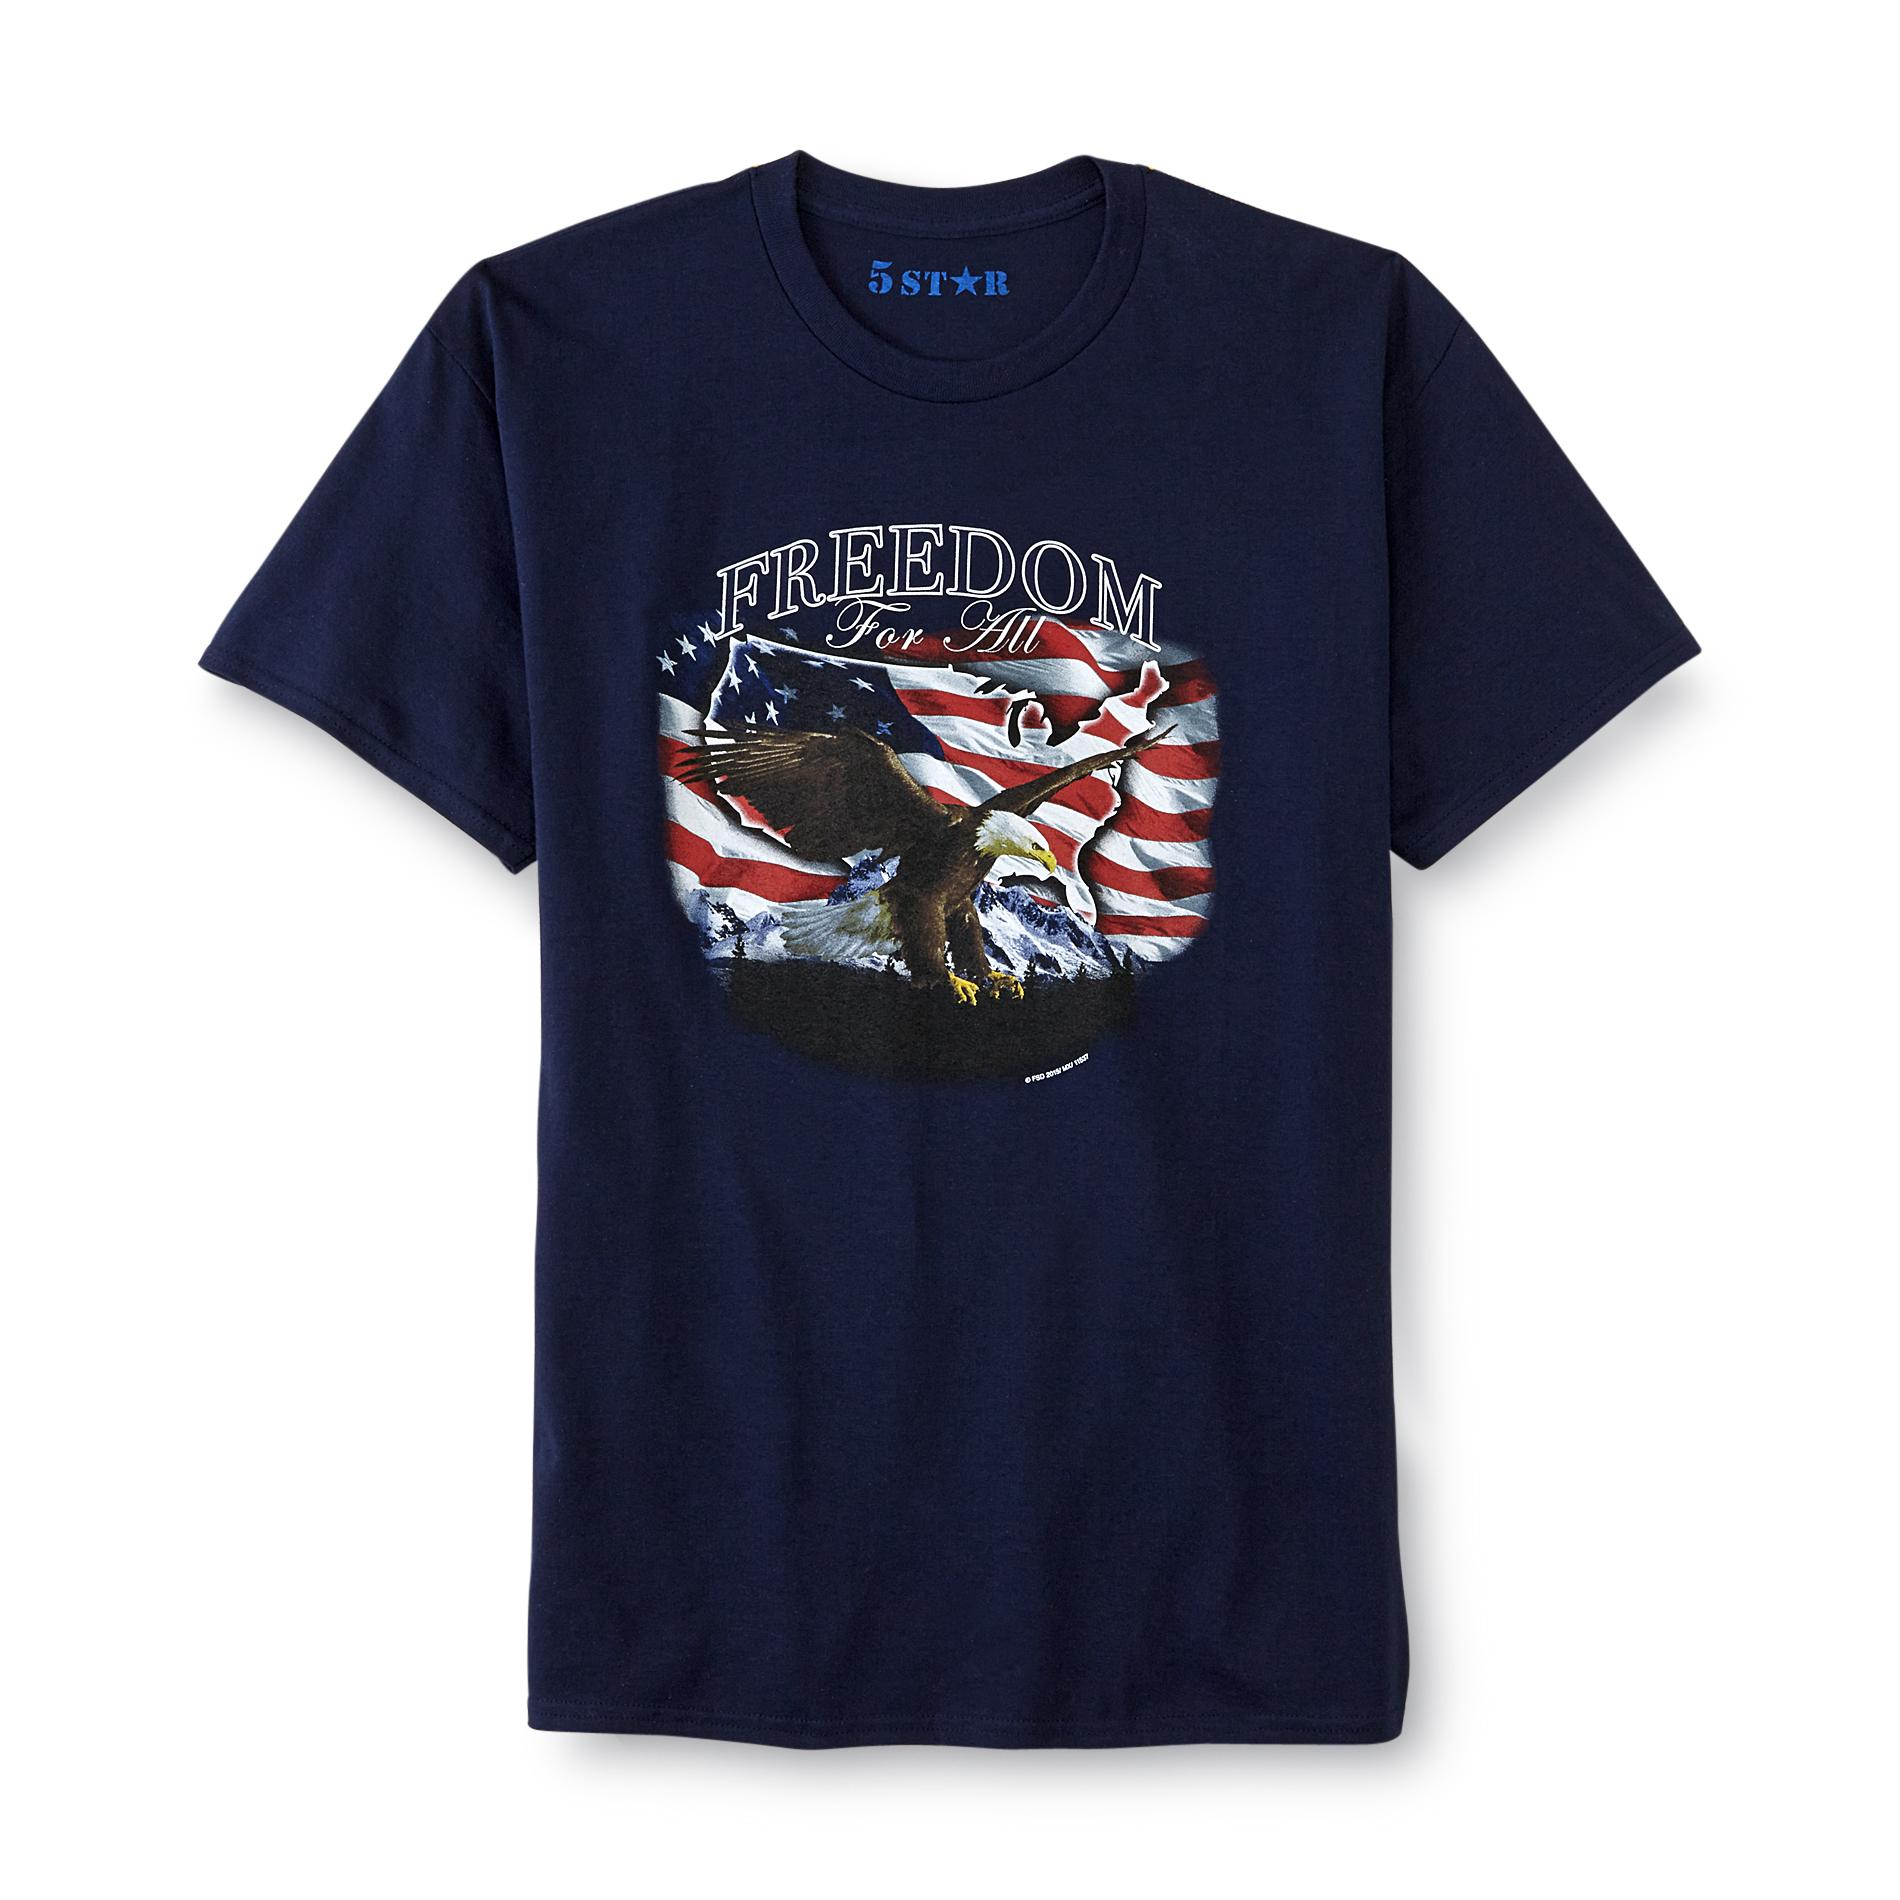 Men's Graphic T-Shirt - Freedom For All